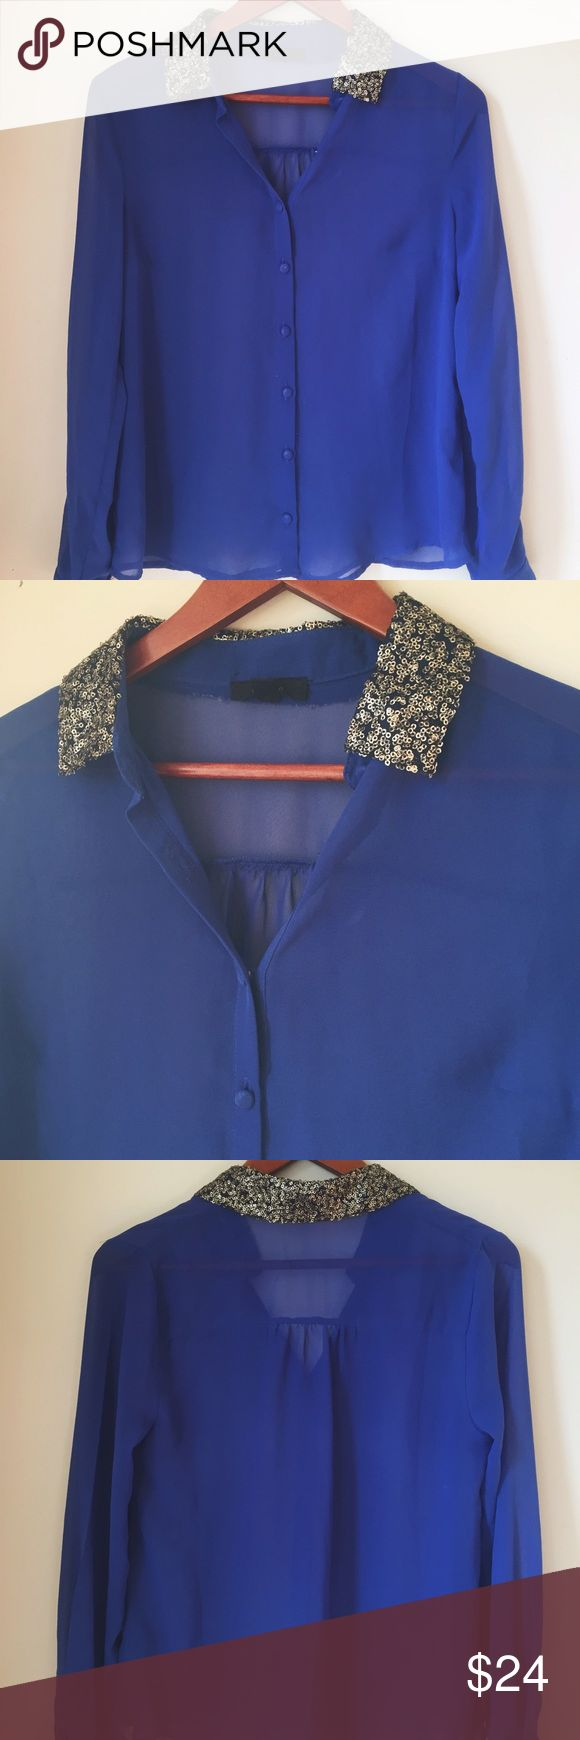 """Royal blue sheer blouse Accented with gold sequined collar. Brand is """"edge"""" Urban Outfitters Tops Blouses"""